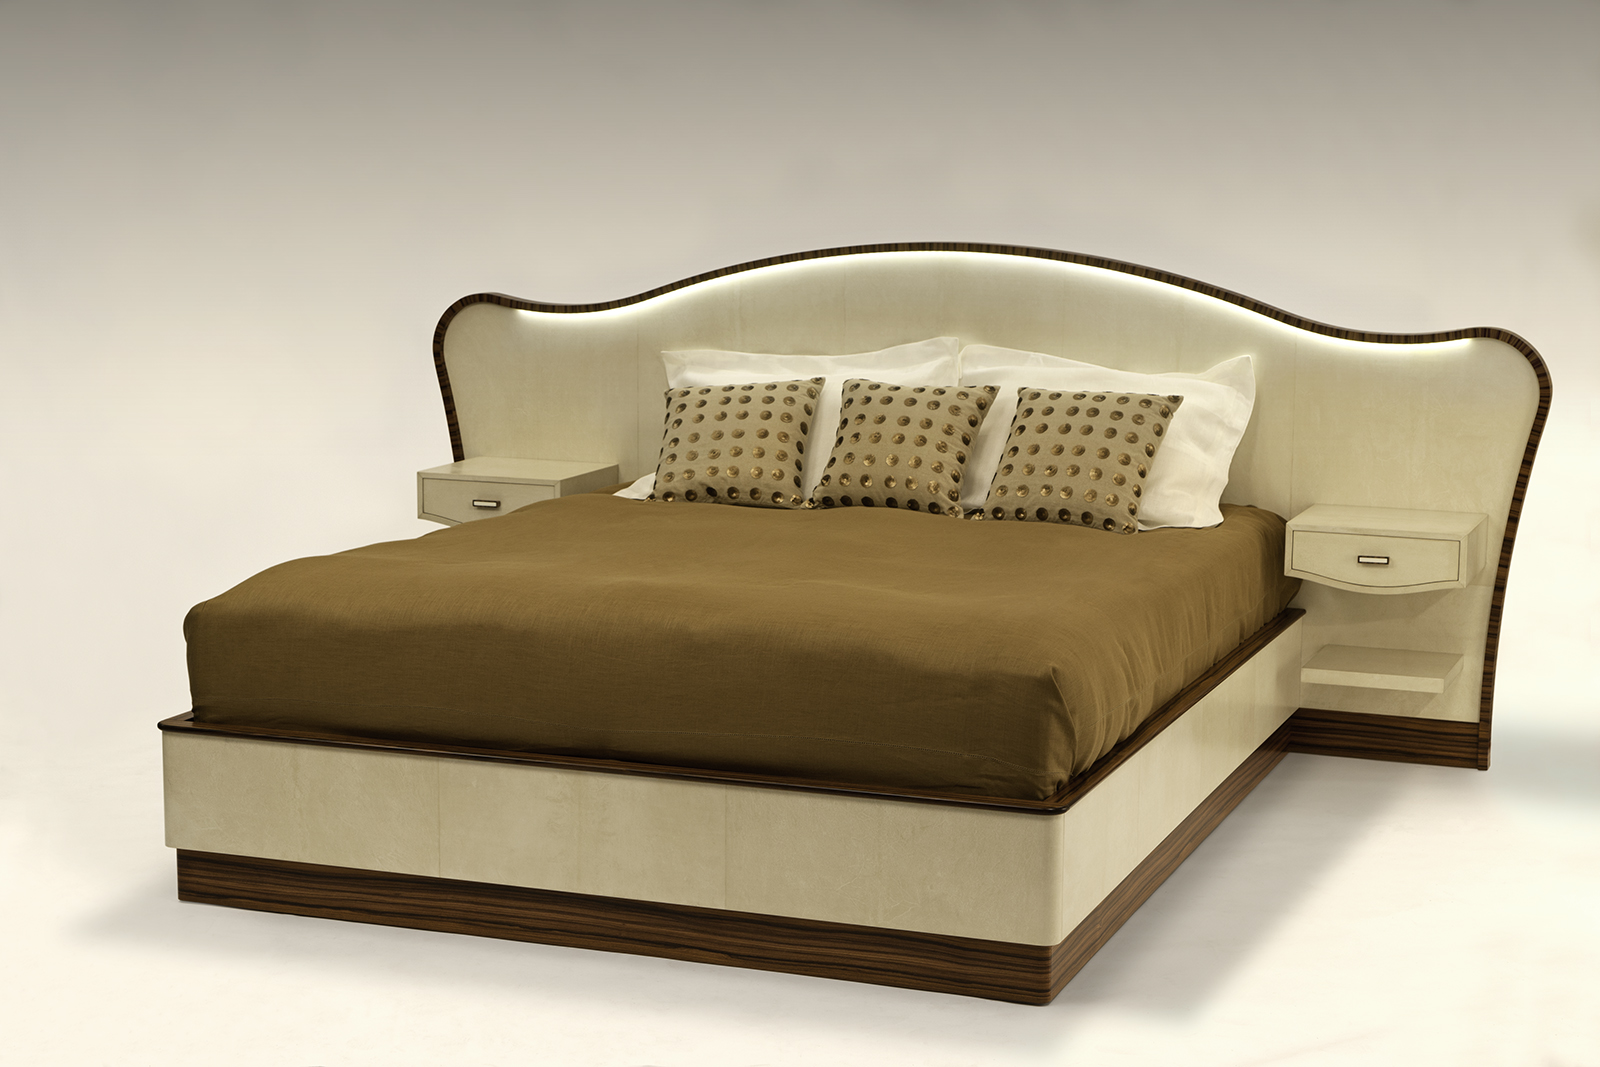 Bed In Parchment & Rosewood